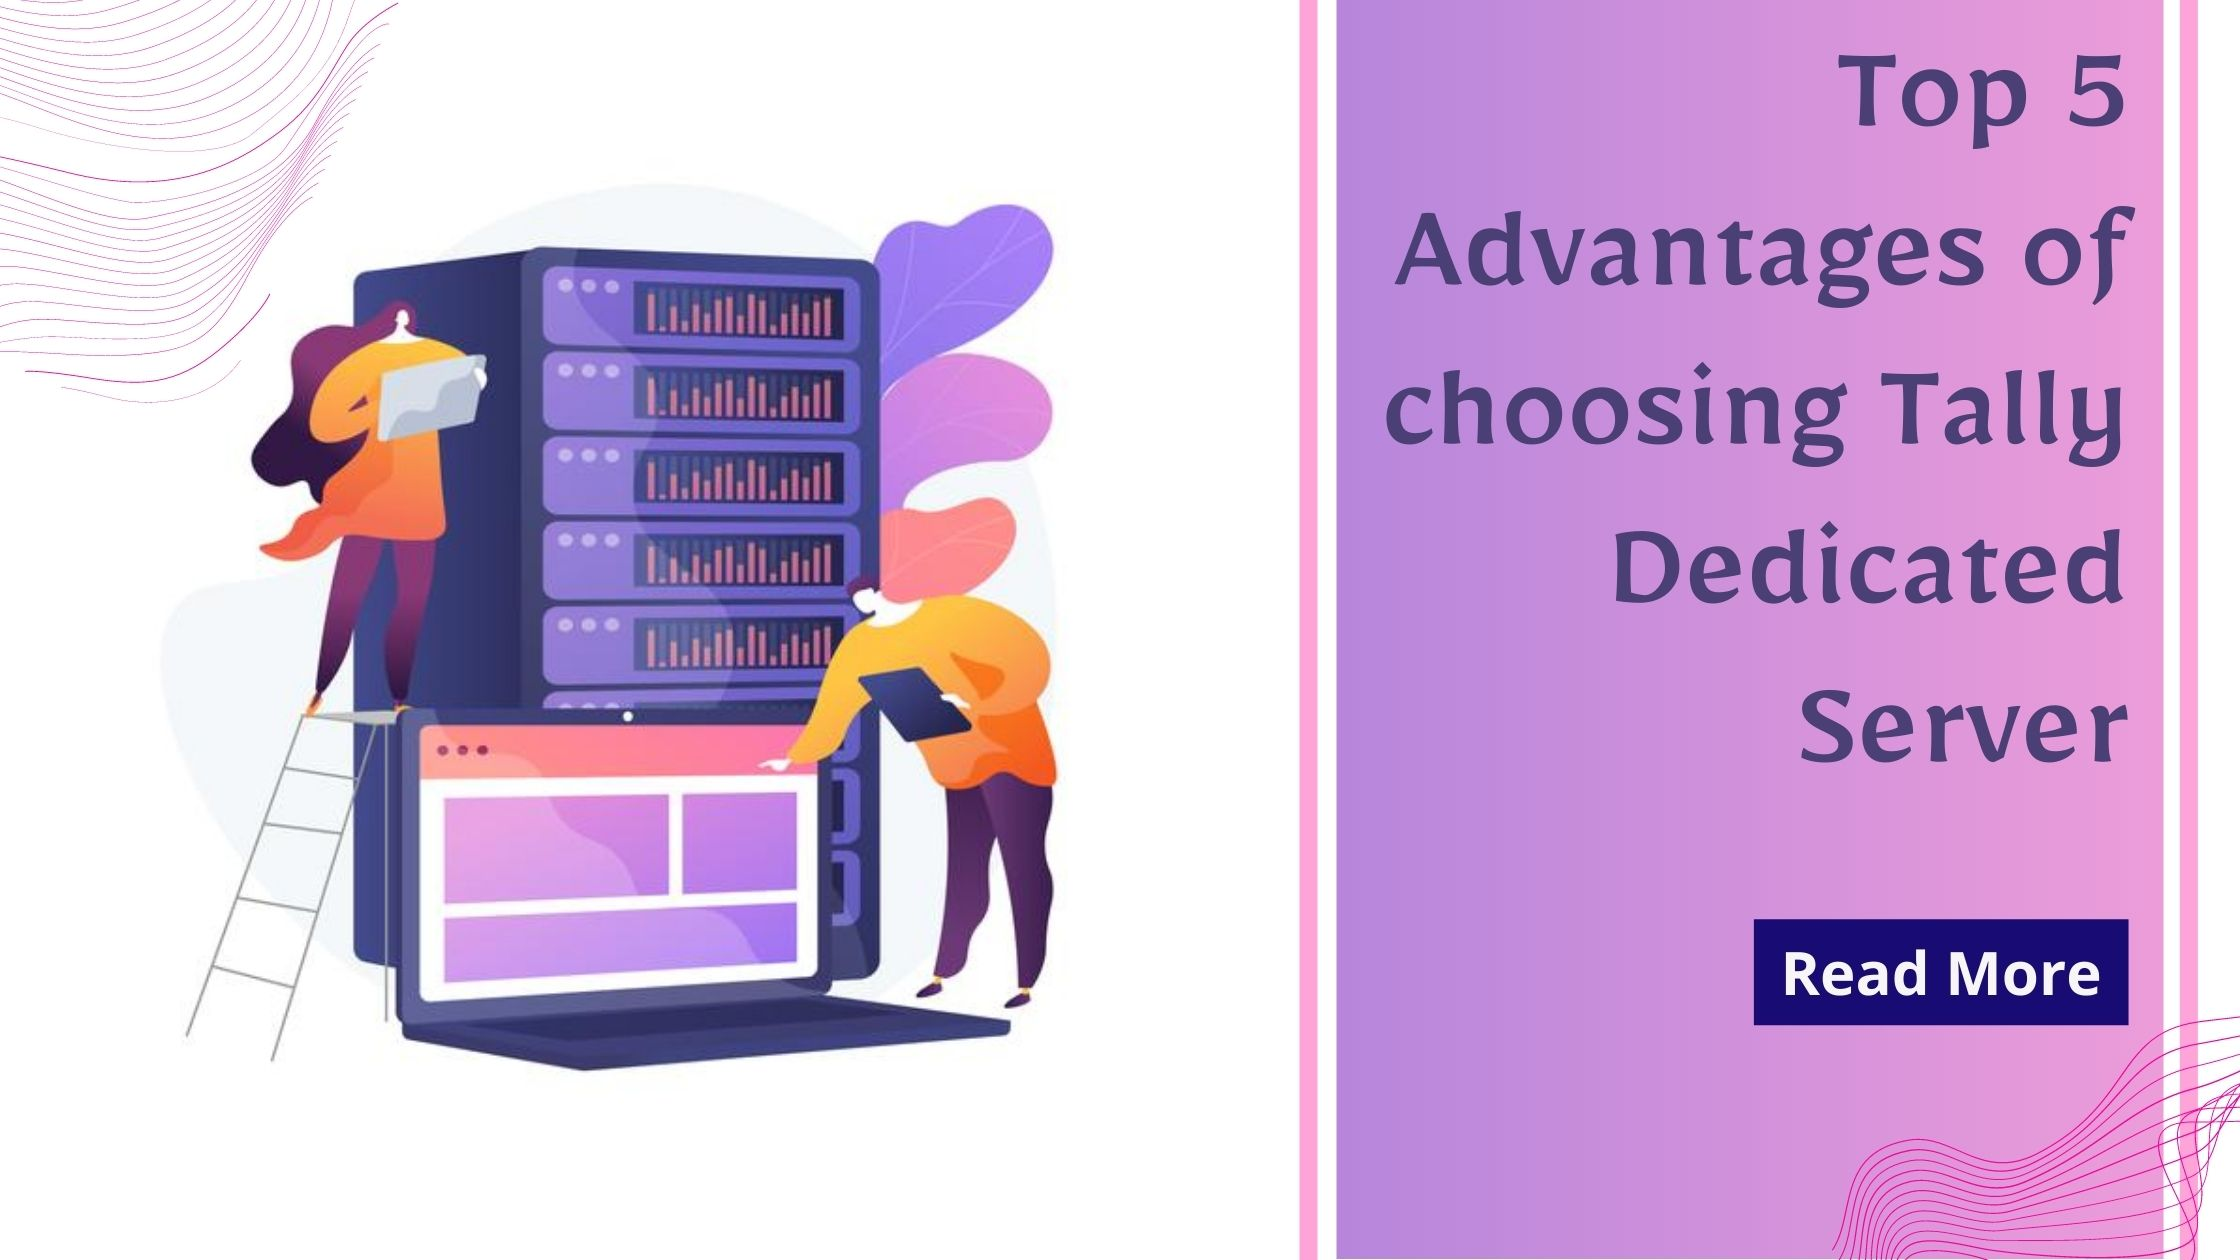 Top 5 Advantages of choosing Tally Dedicated Server